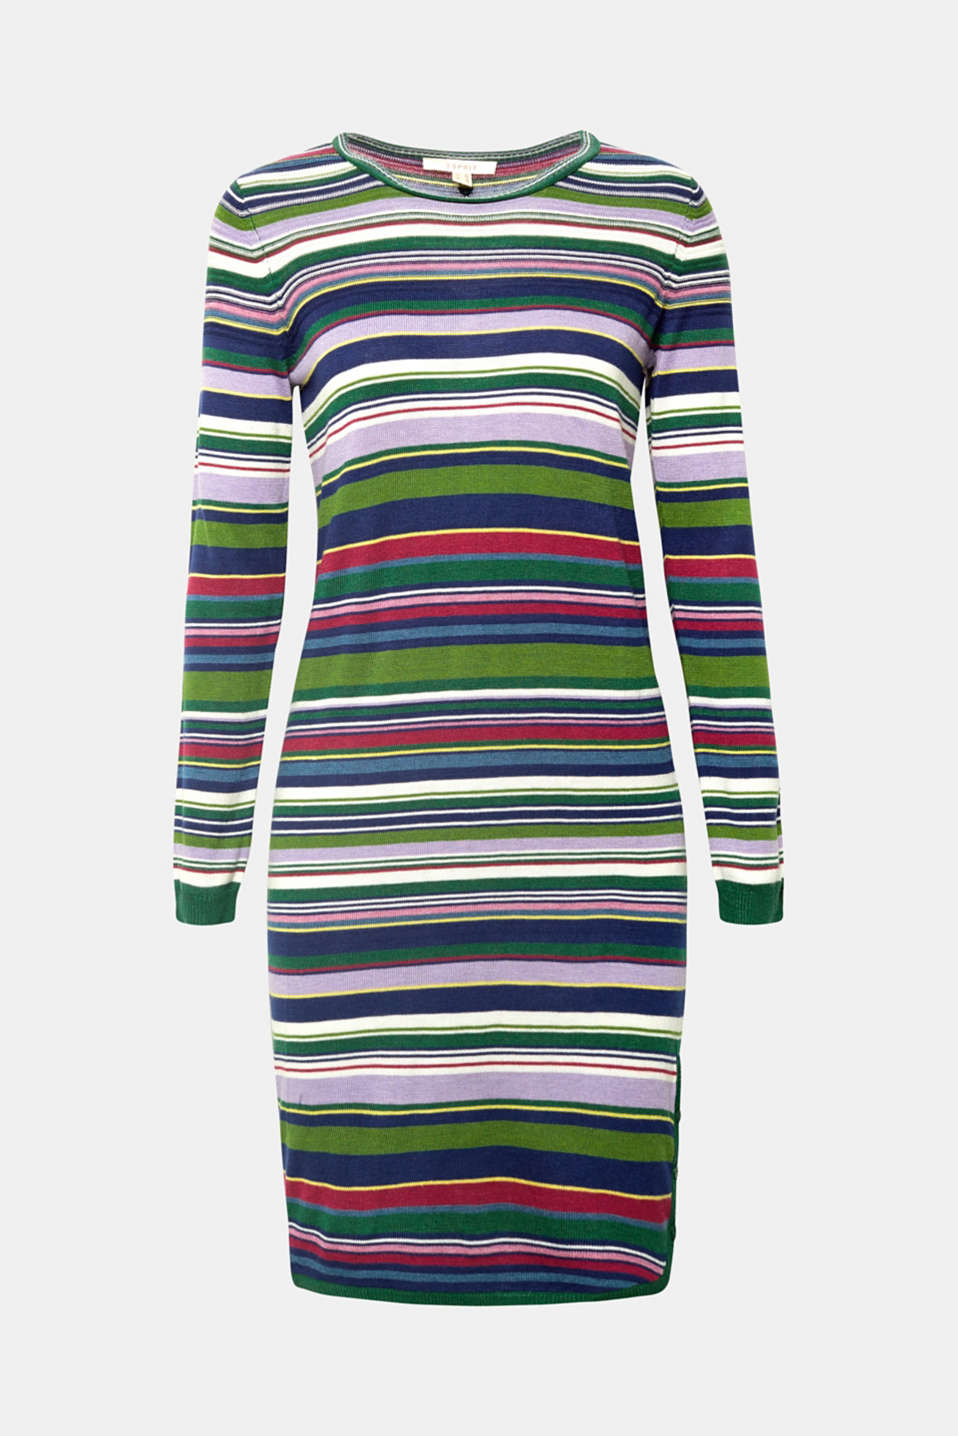 Here comes your feel-good look: close-fitting knitted dress with uneven, colourful stripes and buttons on the sides of the hem!